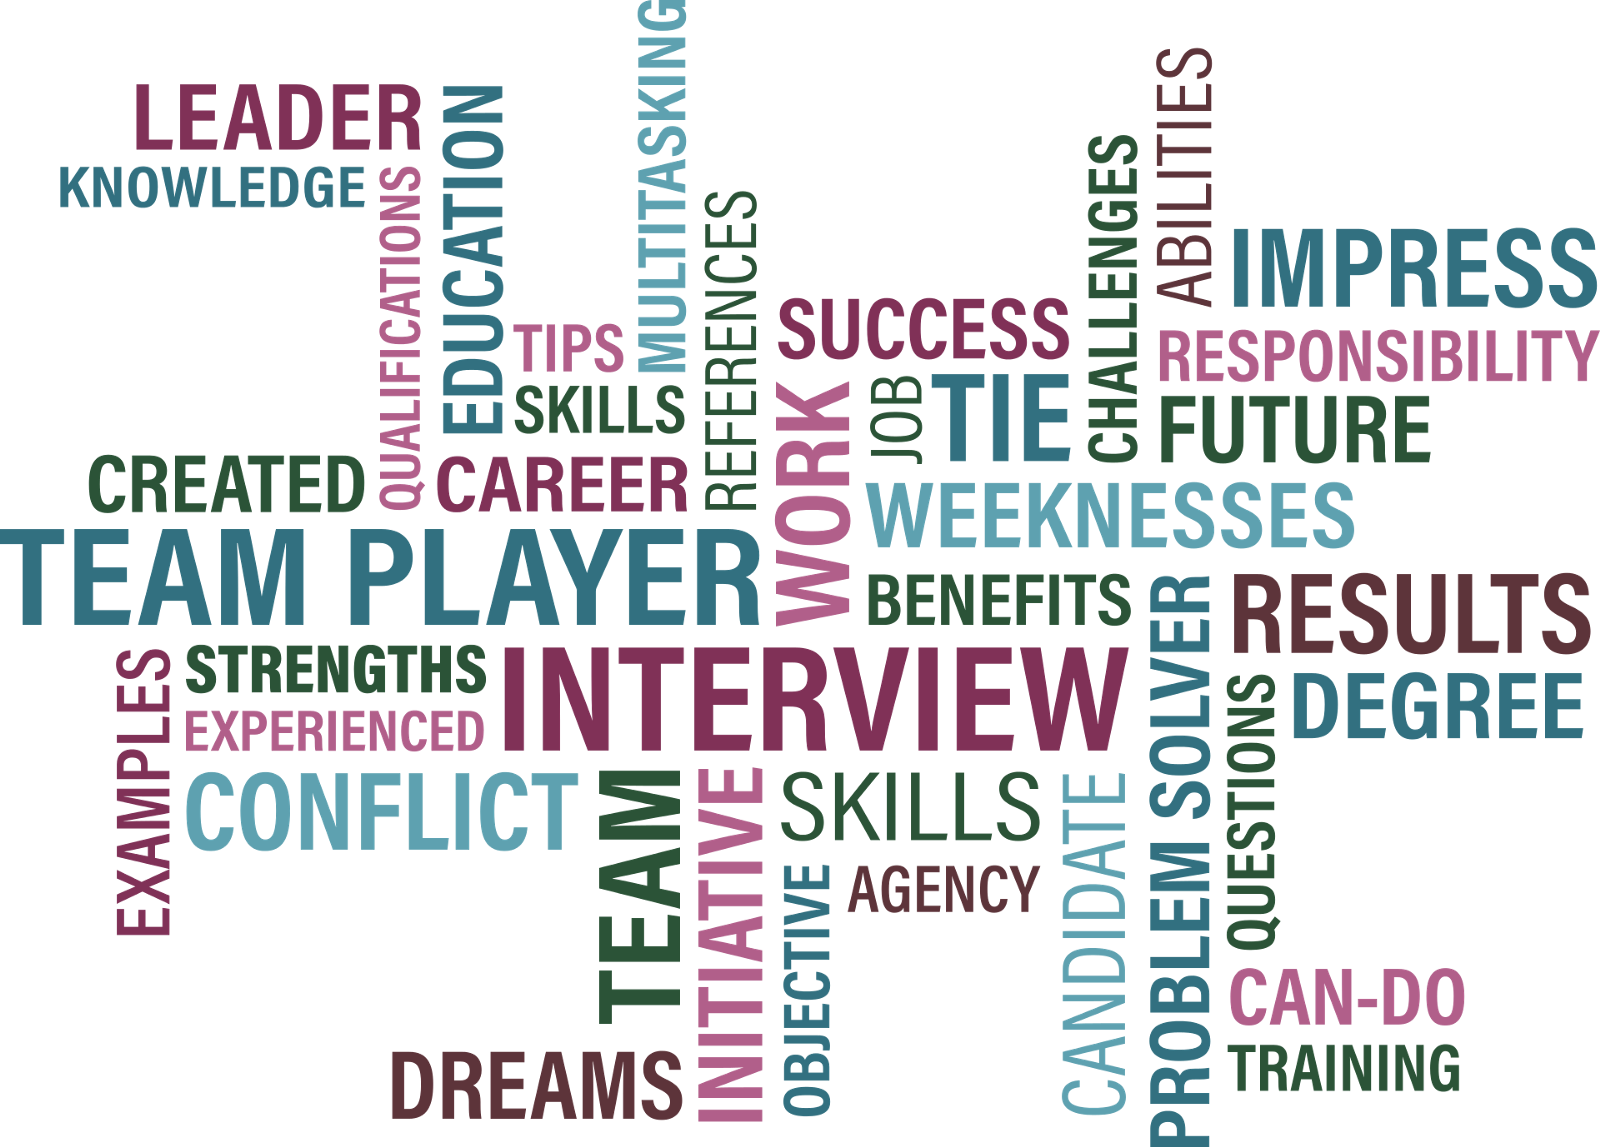 /how-to-master-the-tech-interview-in-these-easy-steps-4e449f0838e2 feature image